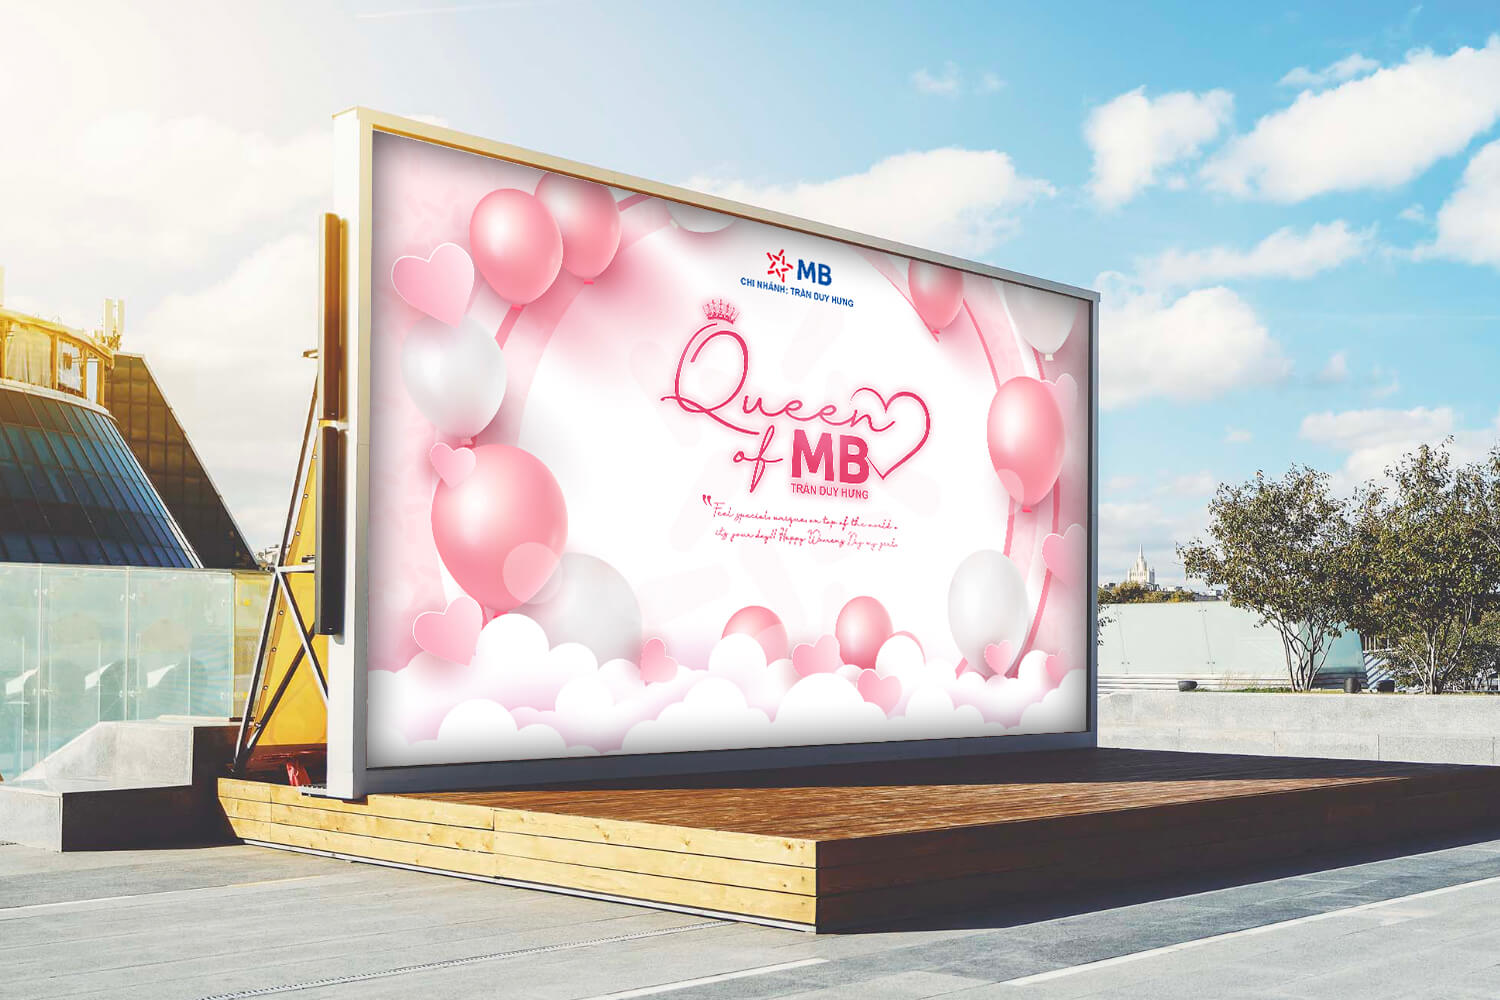 Thiết kế Backdrop MB - Queen Of MB 20/10